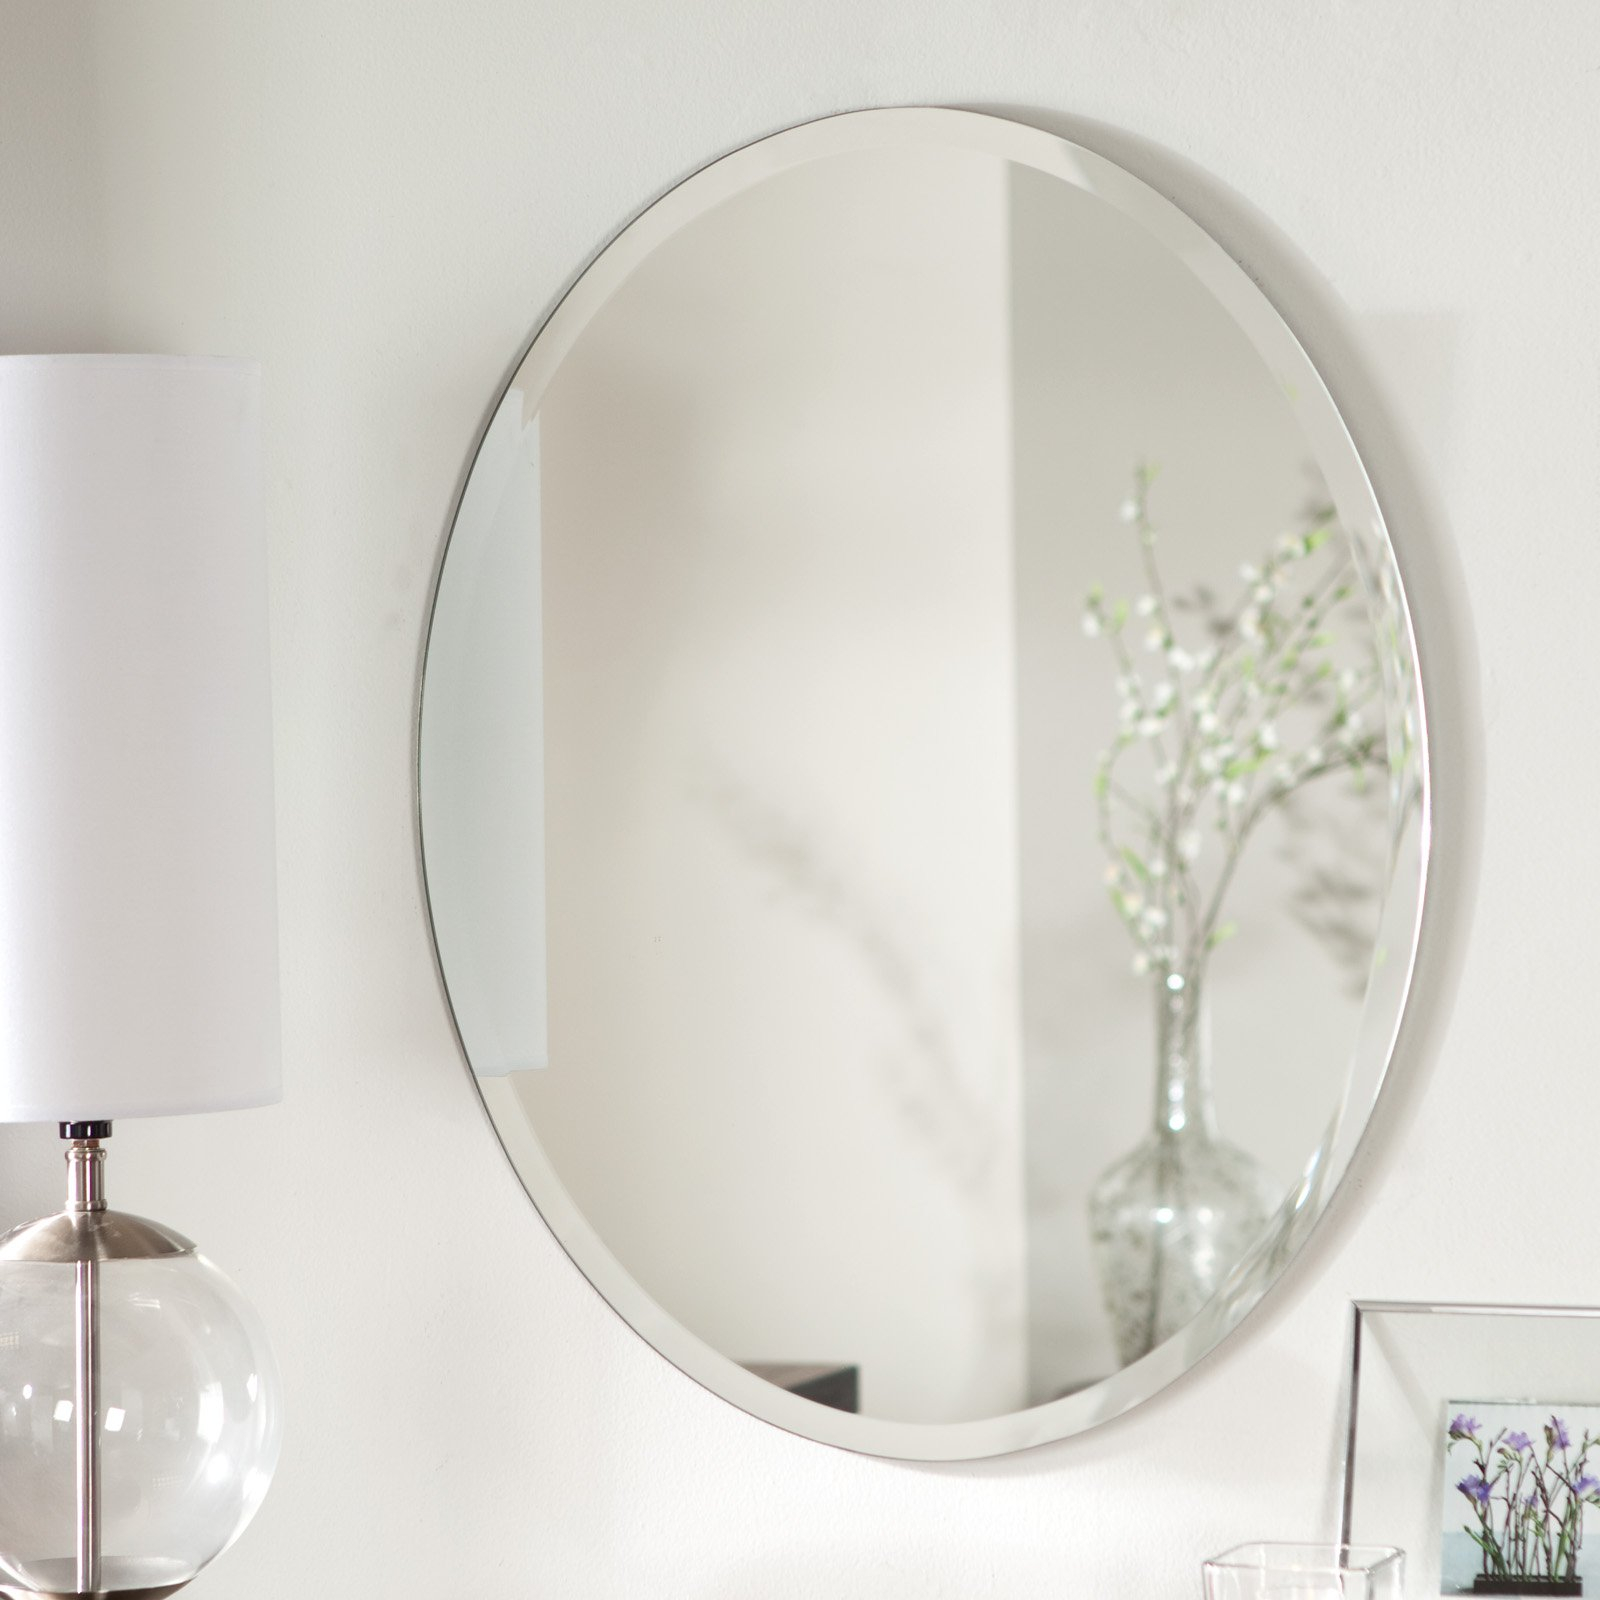 Inspirational Décor Wonderland Odelia Oval Bevel Frameless Wall Mirror - 22W regarding Bathroom Oval Mirror